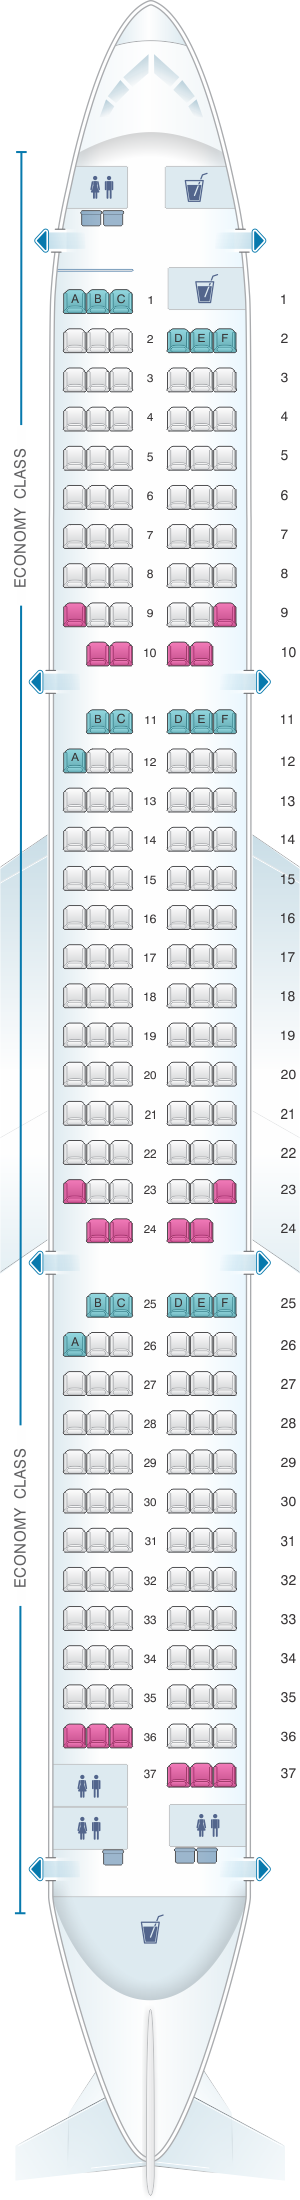 Seat map for airberlin Airbus A321 200